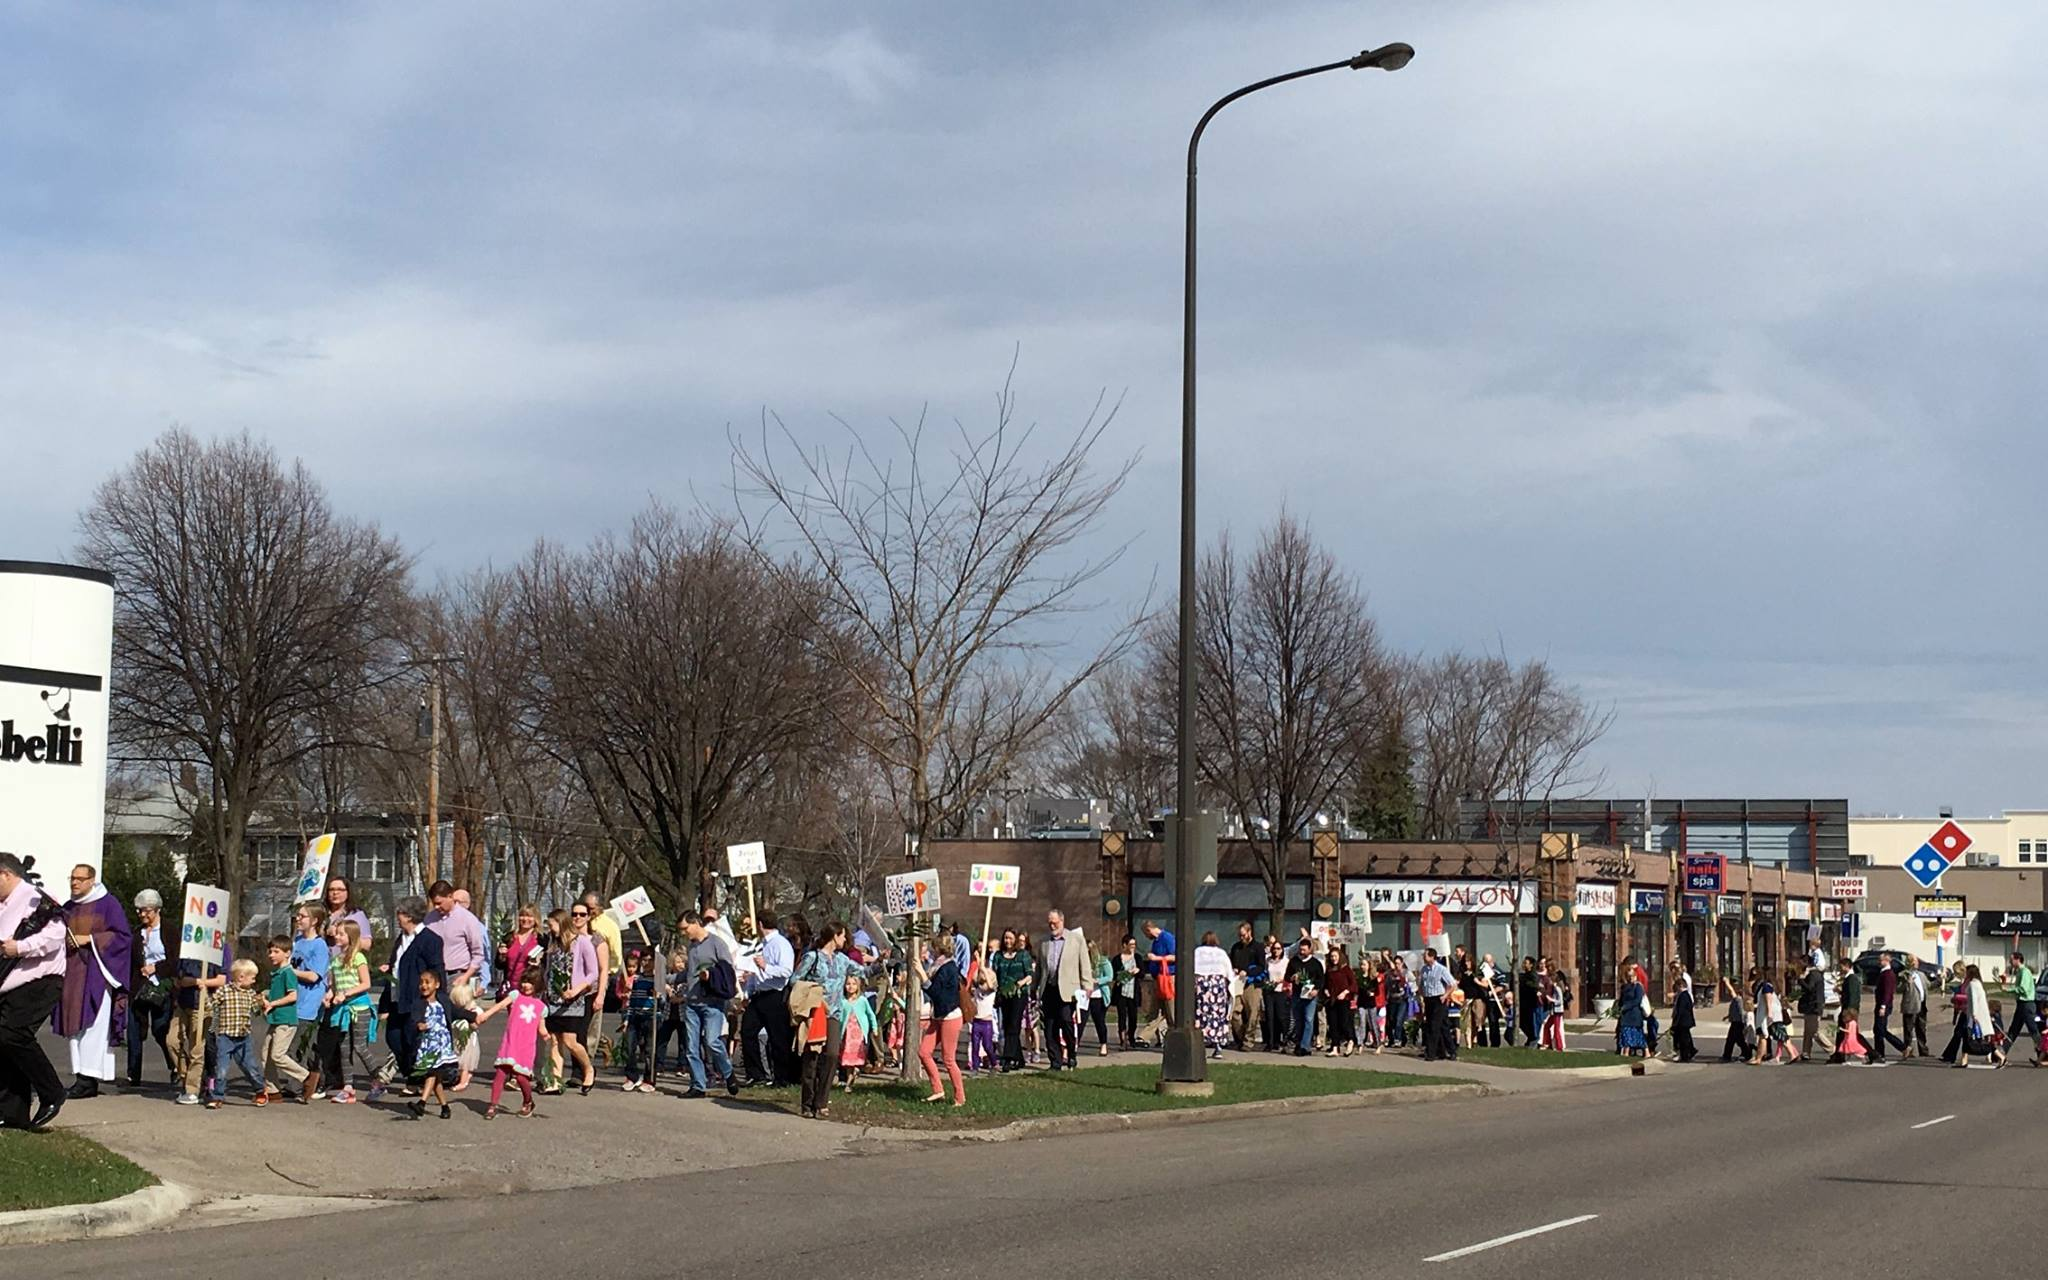 Children's Peace March, St. Paul, Minn.